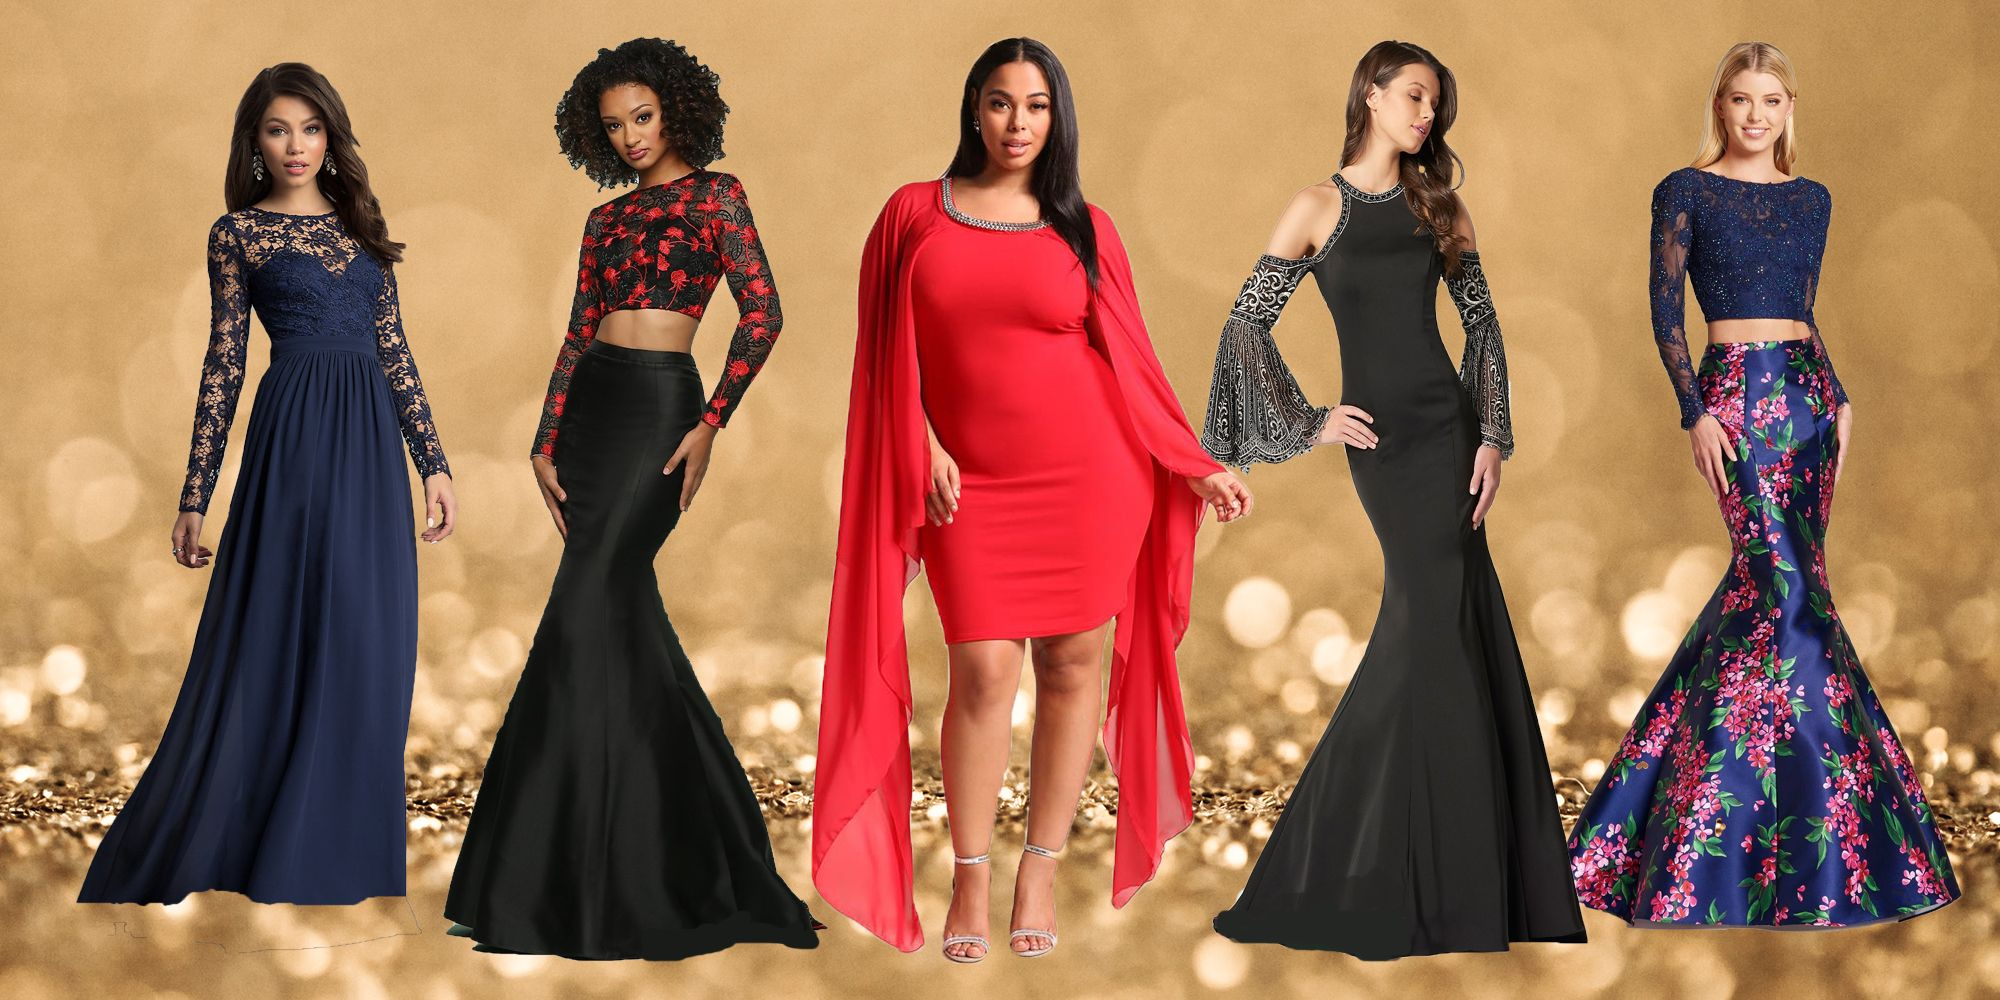 11 Most Elegant Long Sleeve Prom Dresses Of 2018 For A